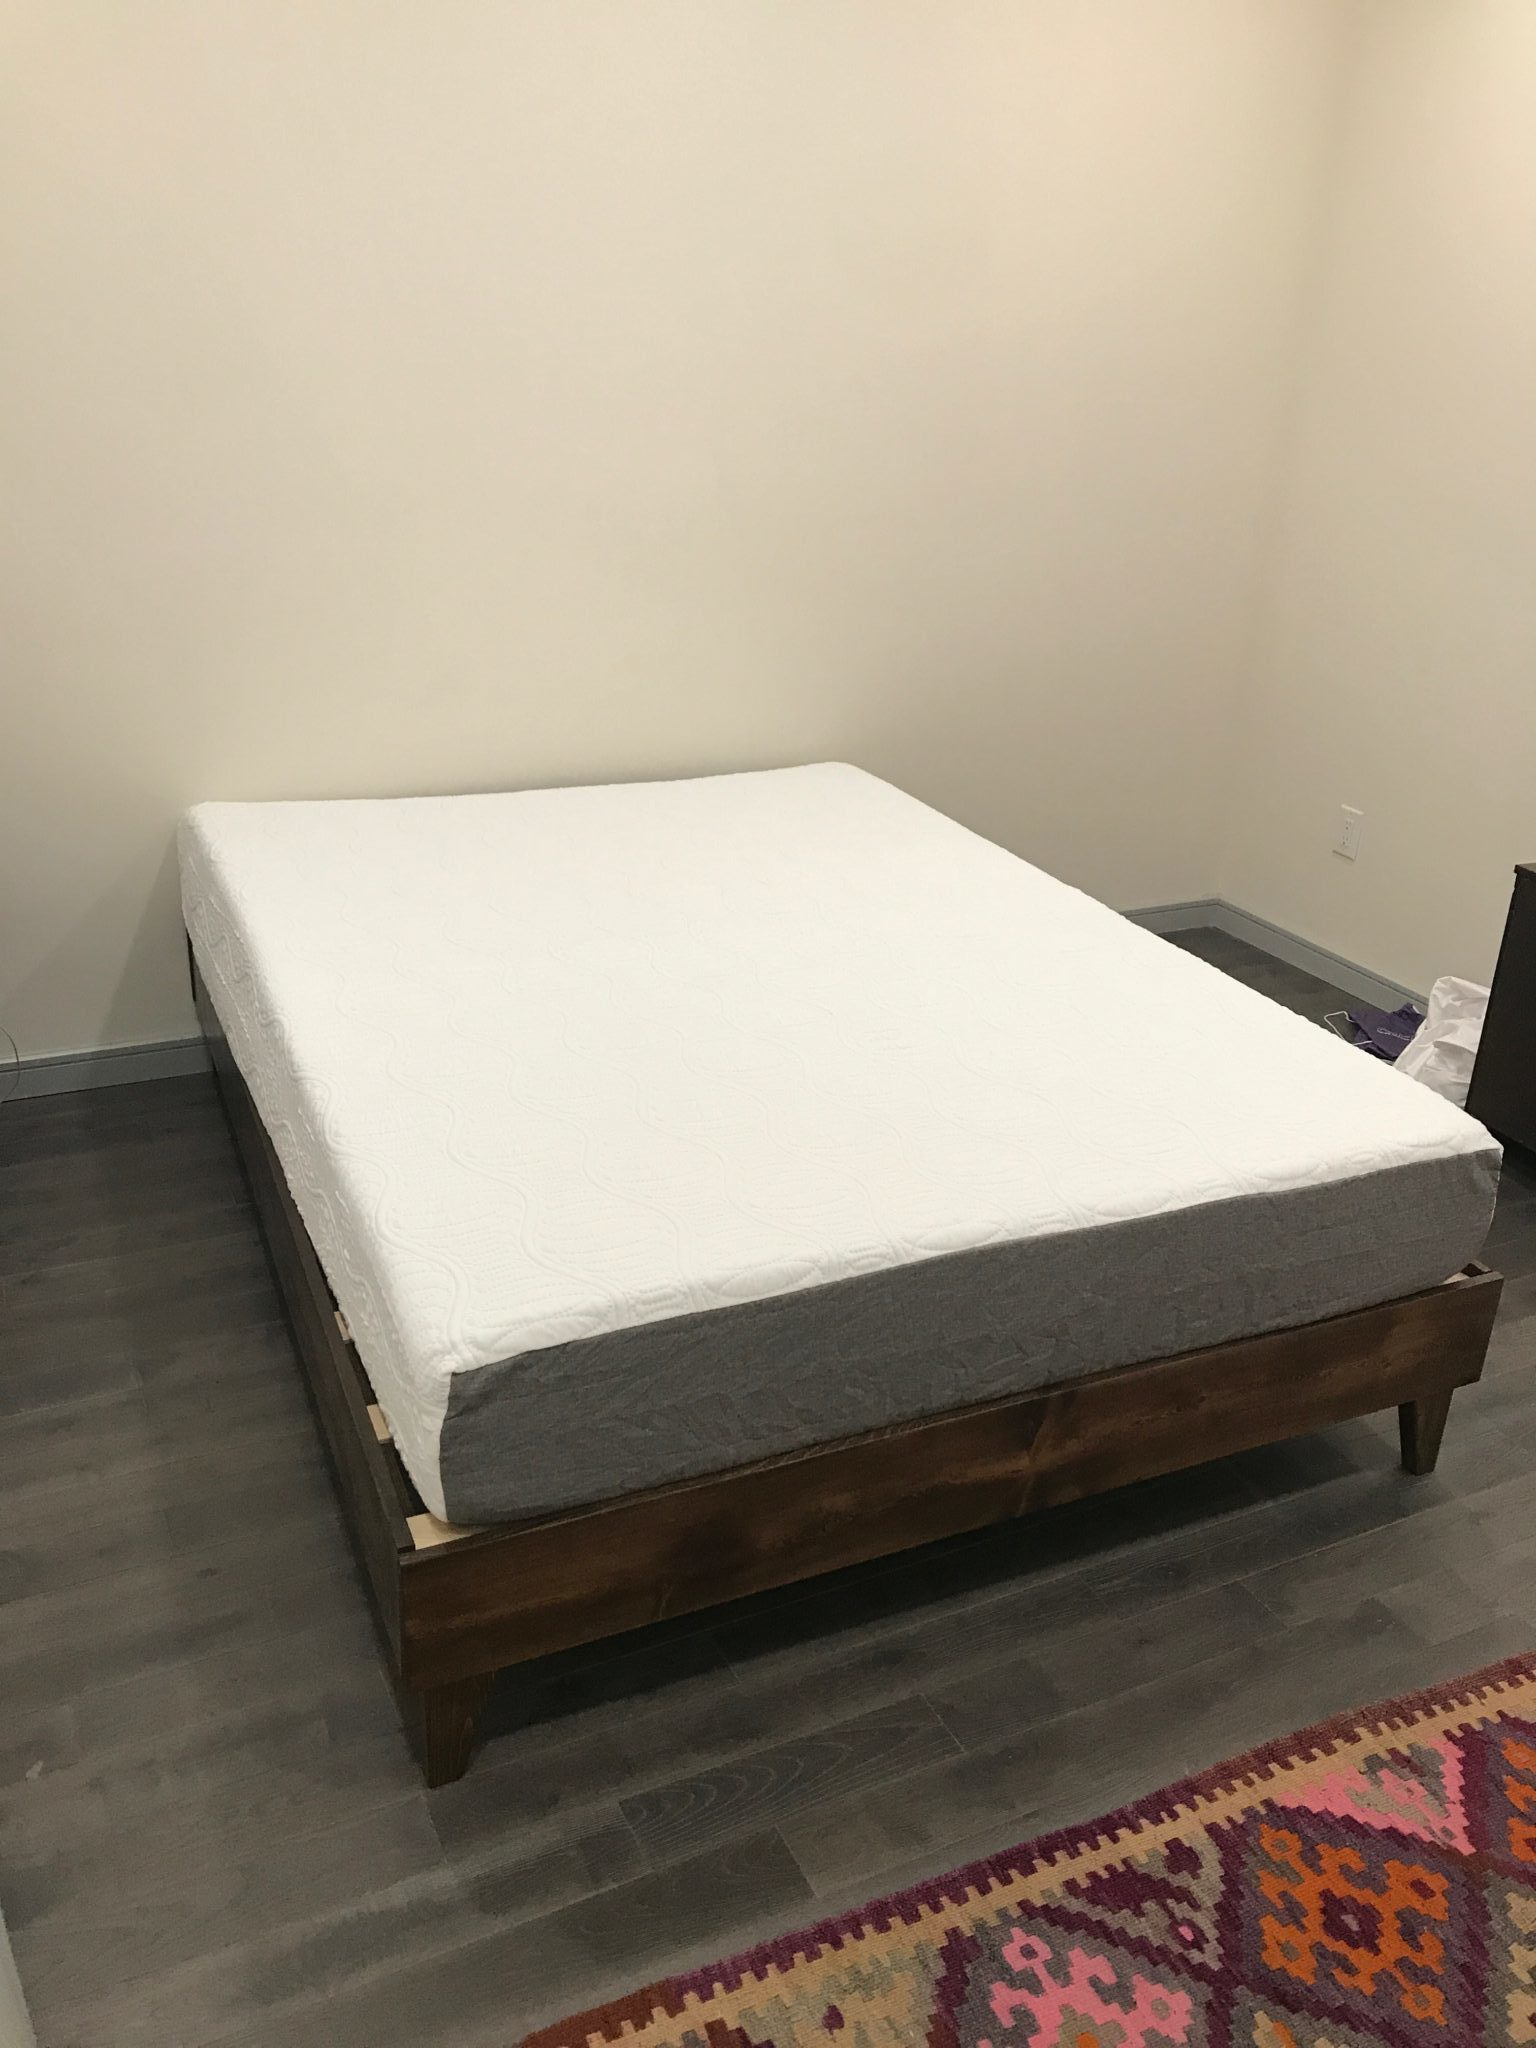 eLuxury 10 Inch Gel Memory Foam Mattress Review